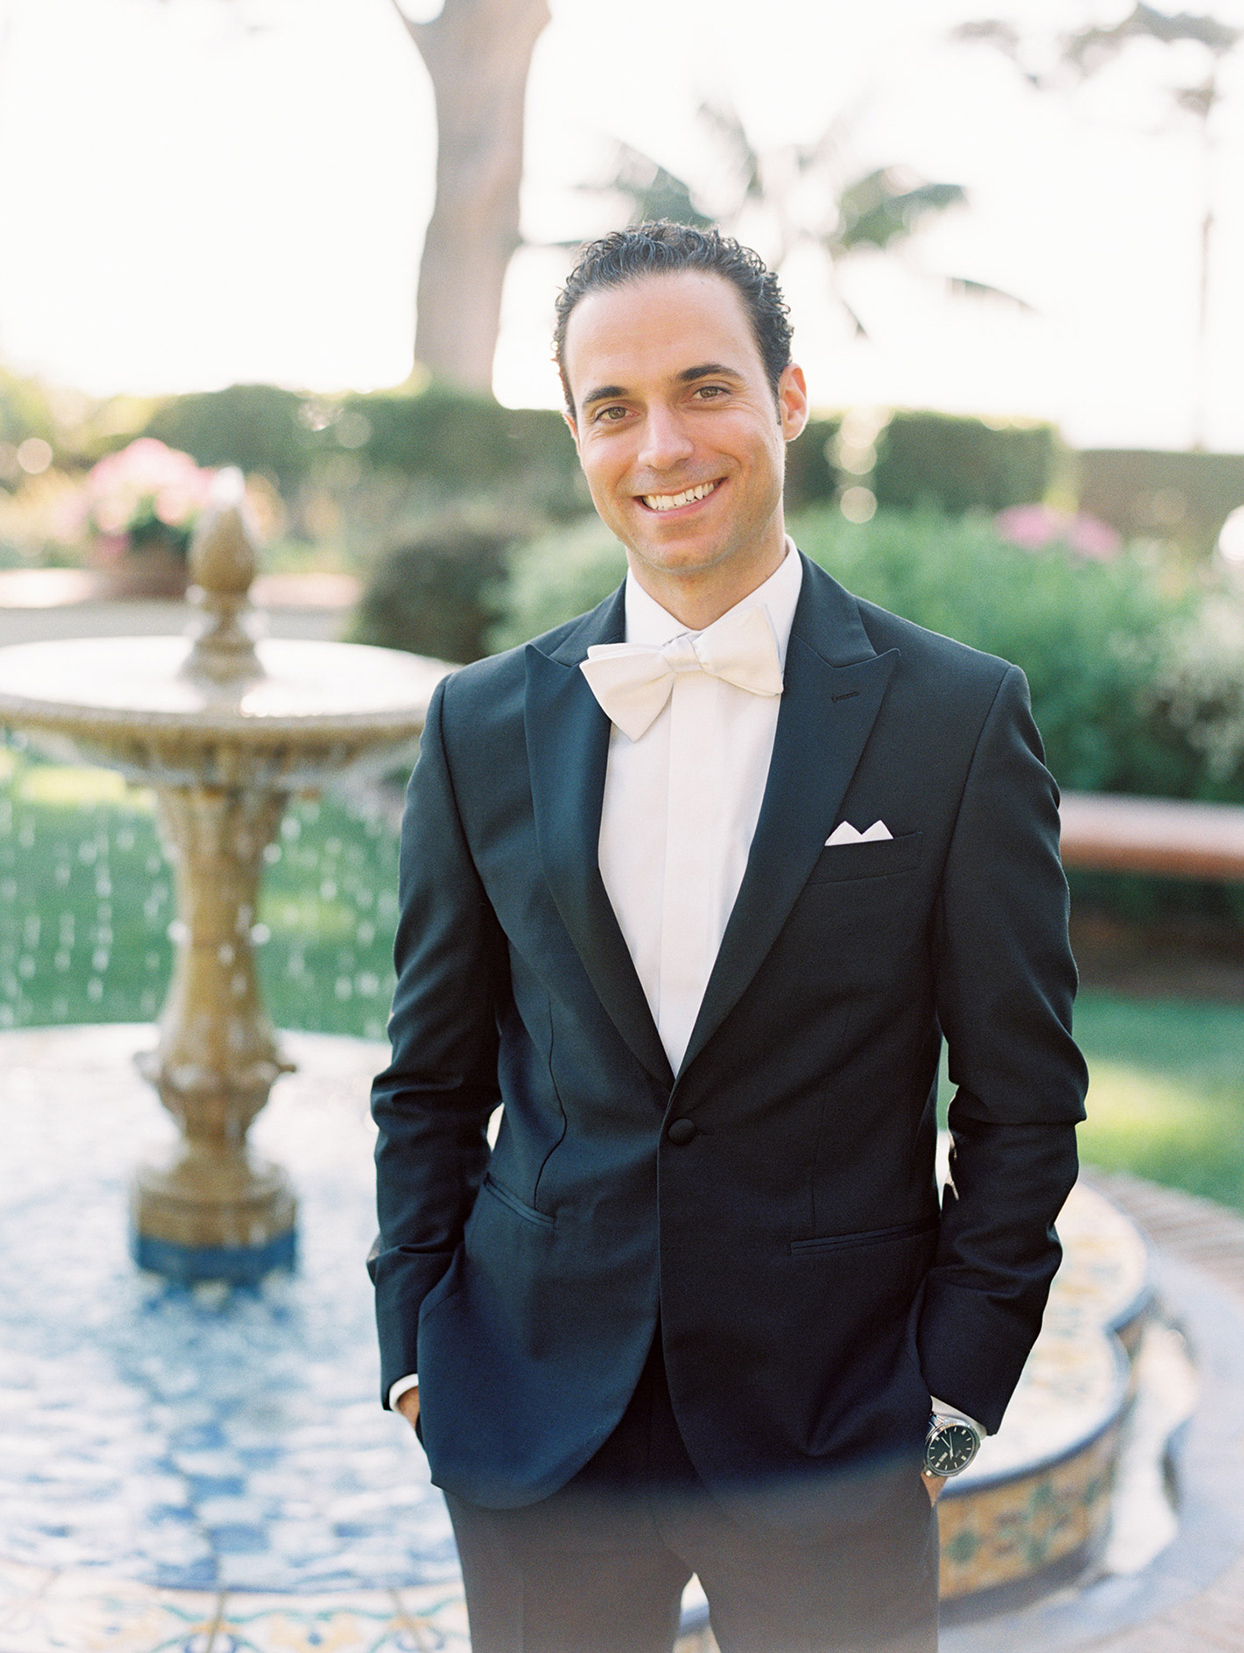 groom in black suit with white bowtie